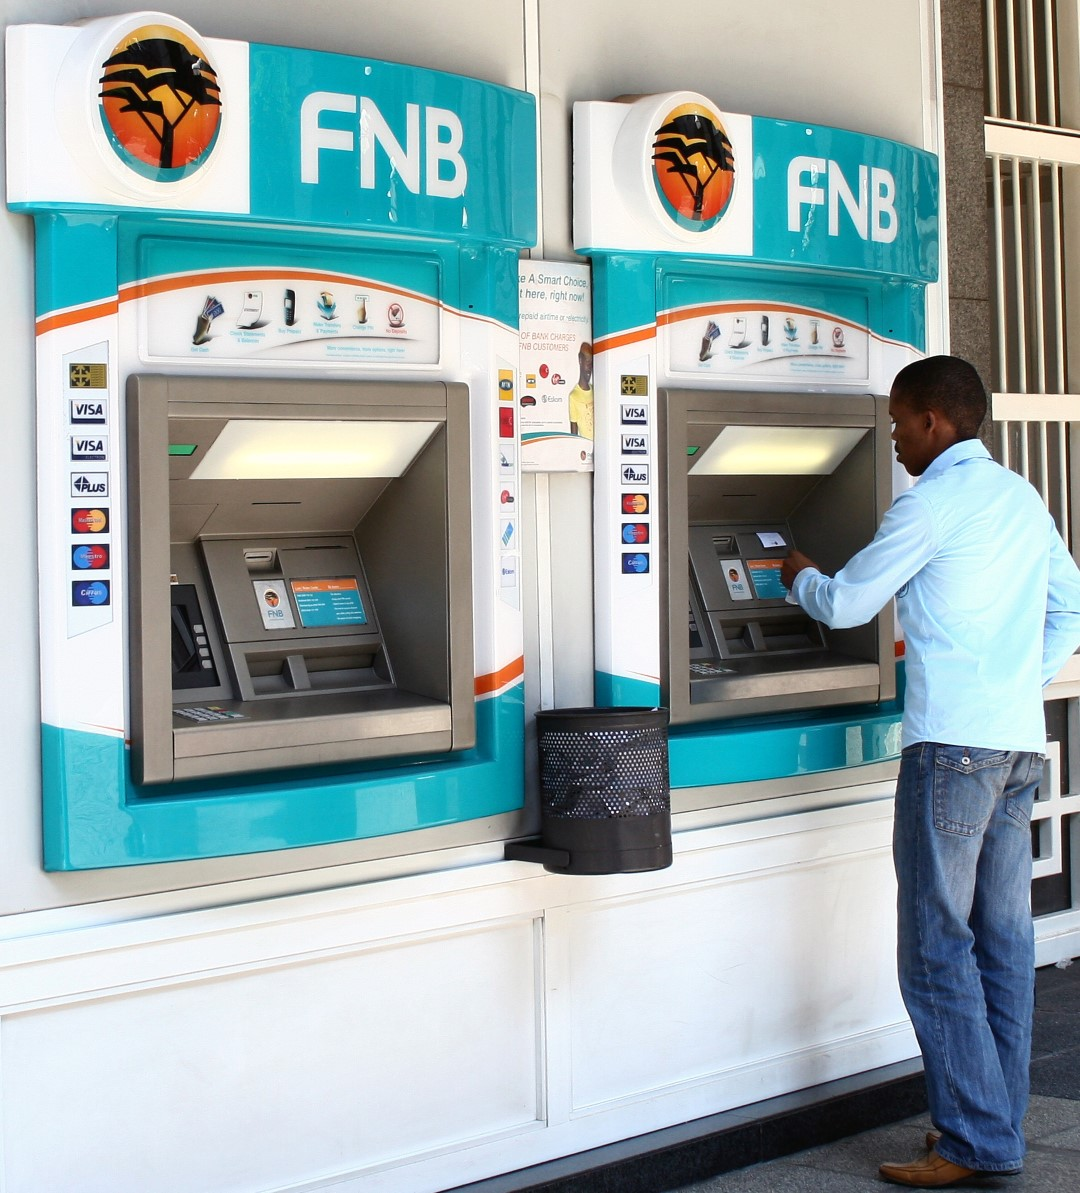 fnb invests r400m into branches moneyweb. Black Bedroom Furniture Sets. Home Design Ideas